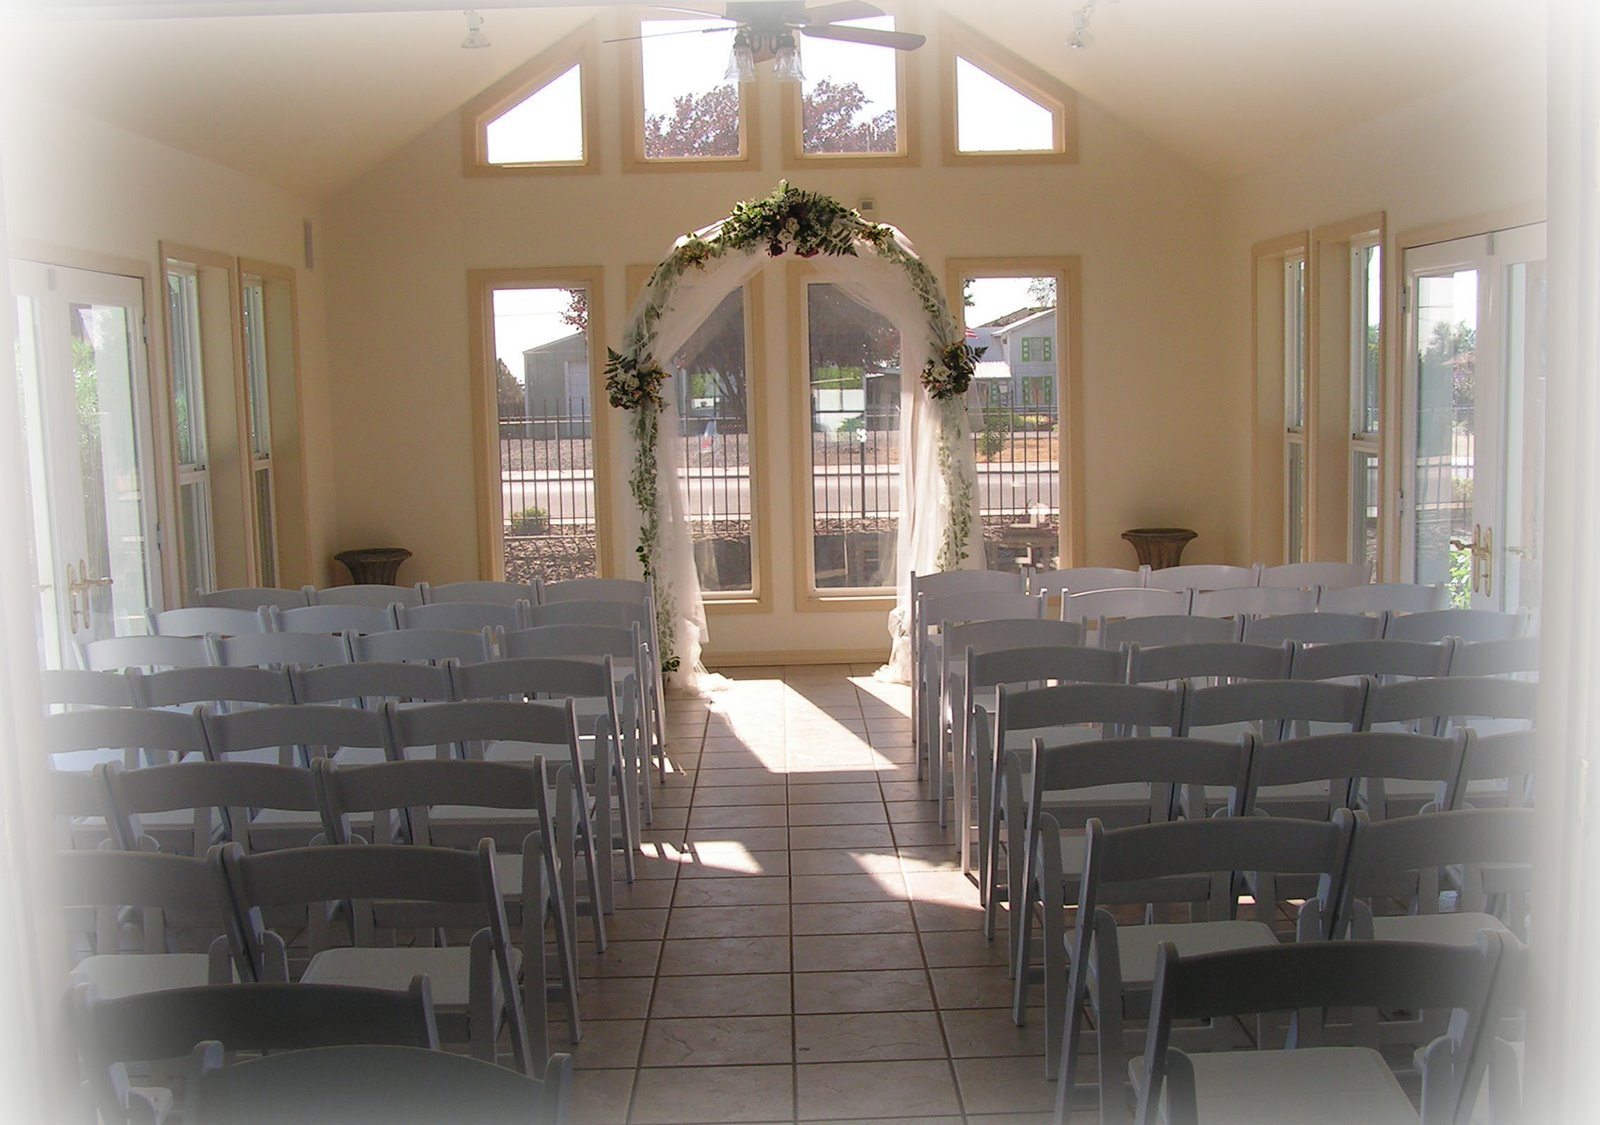 our wedding venue, inside